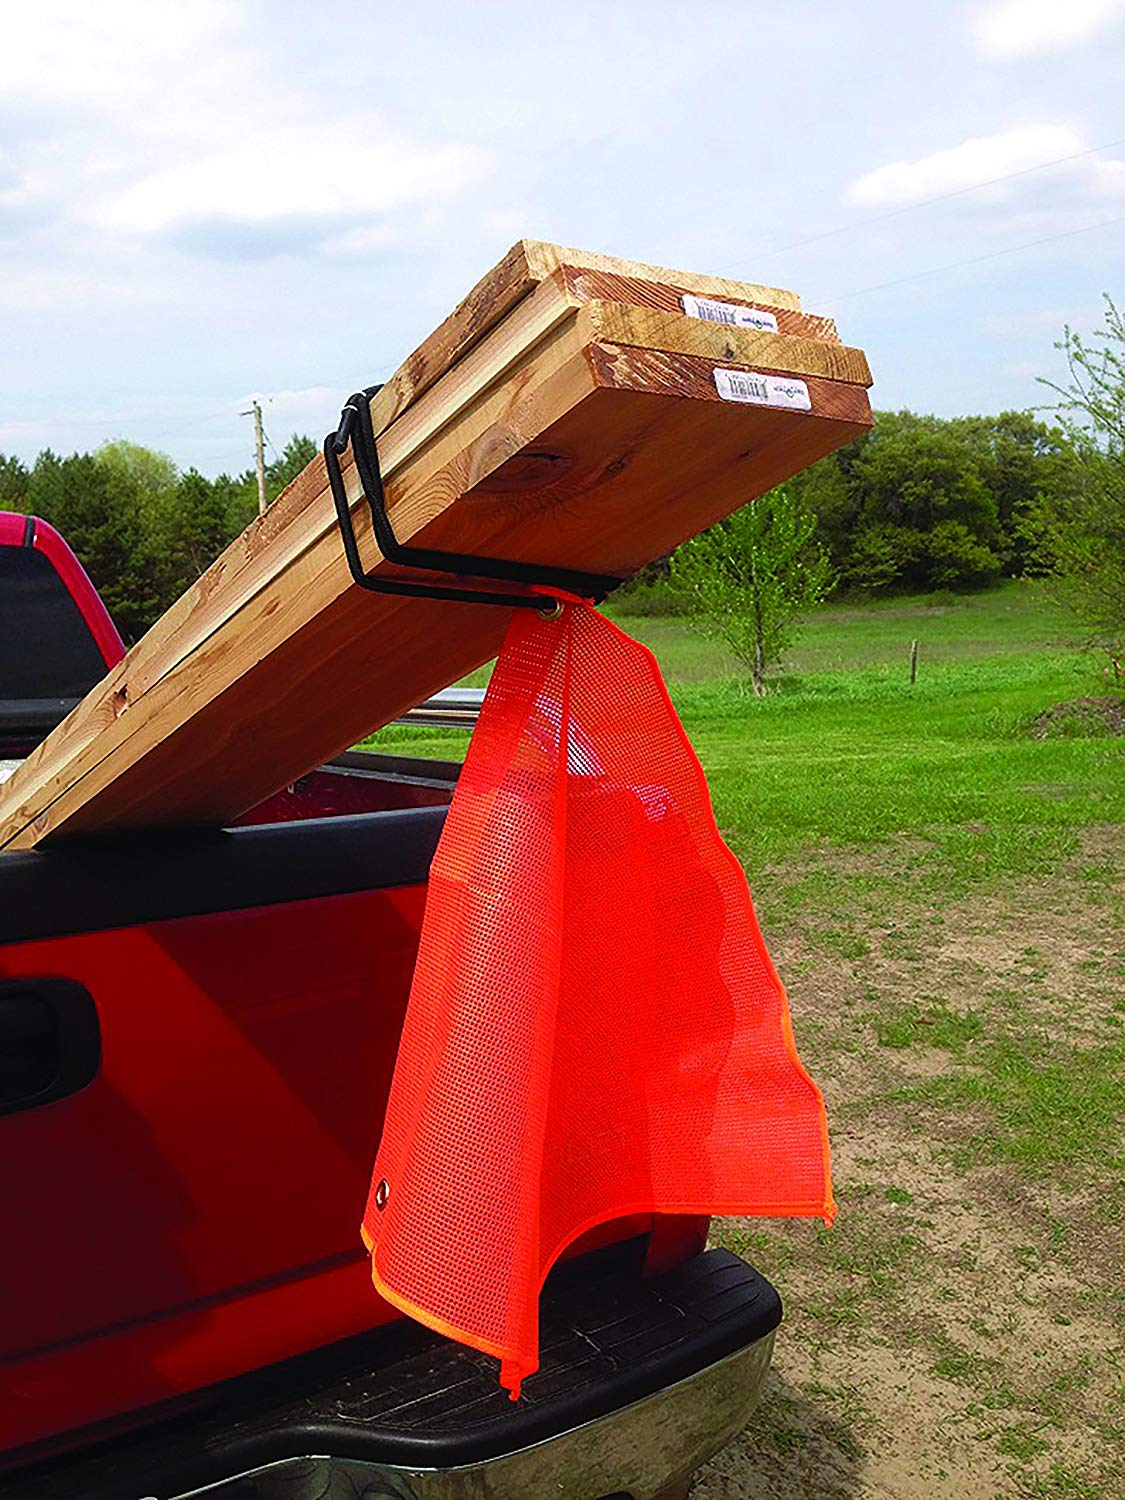 Lumber sticking out of the back of a truck with an orange safety flag attached